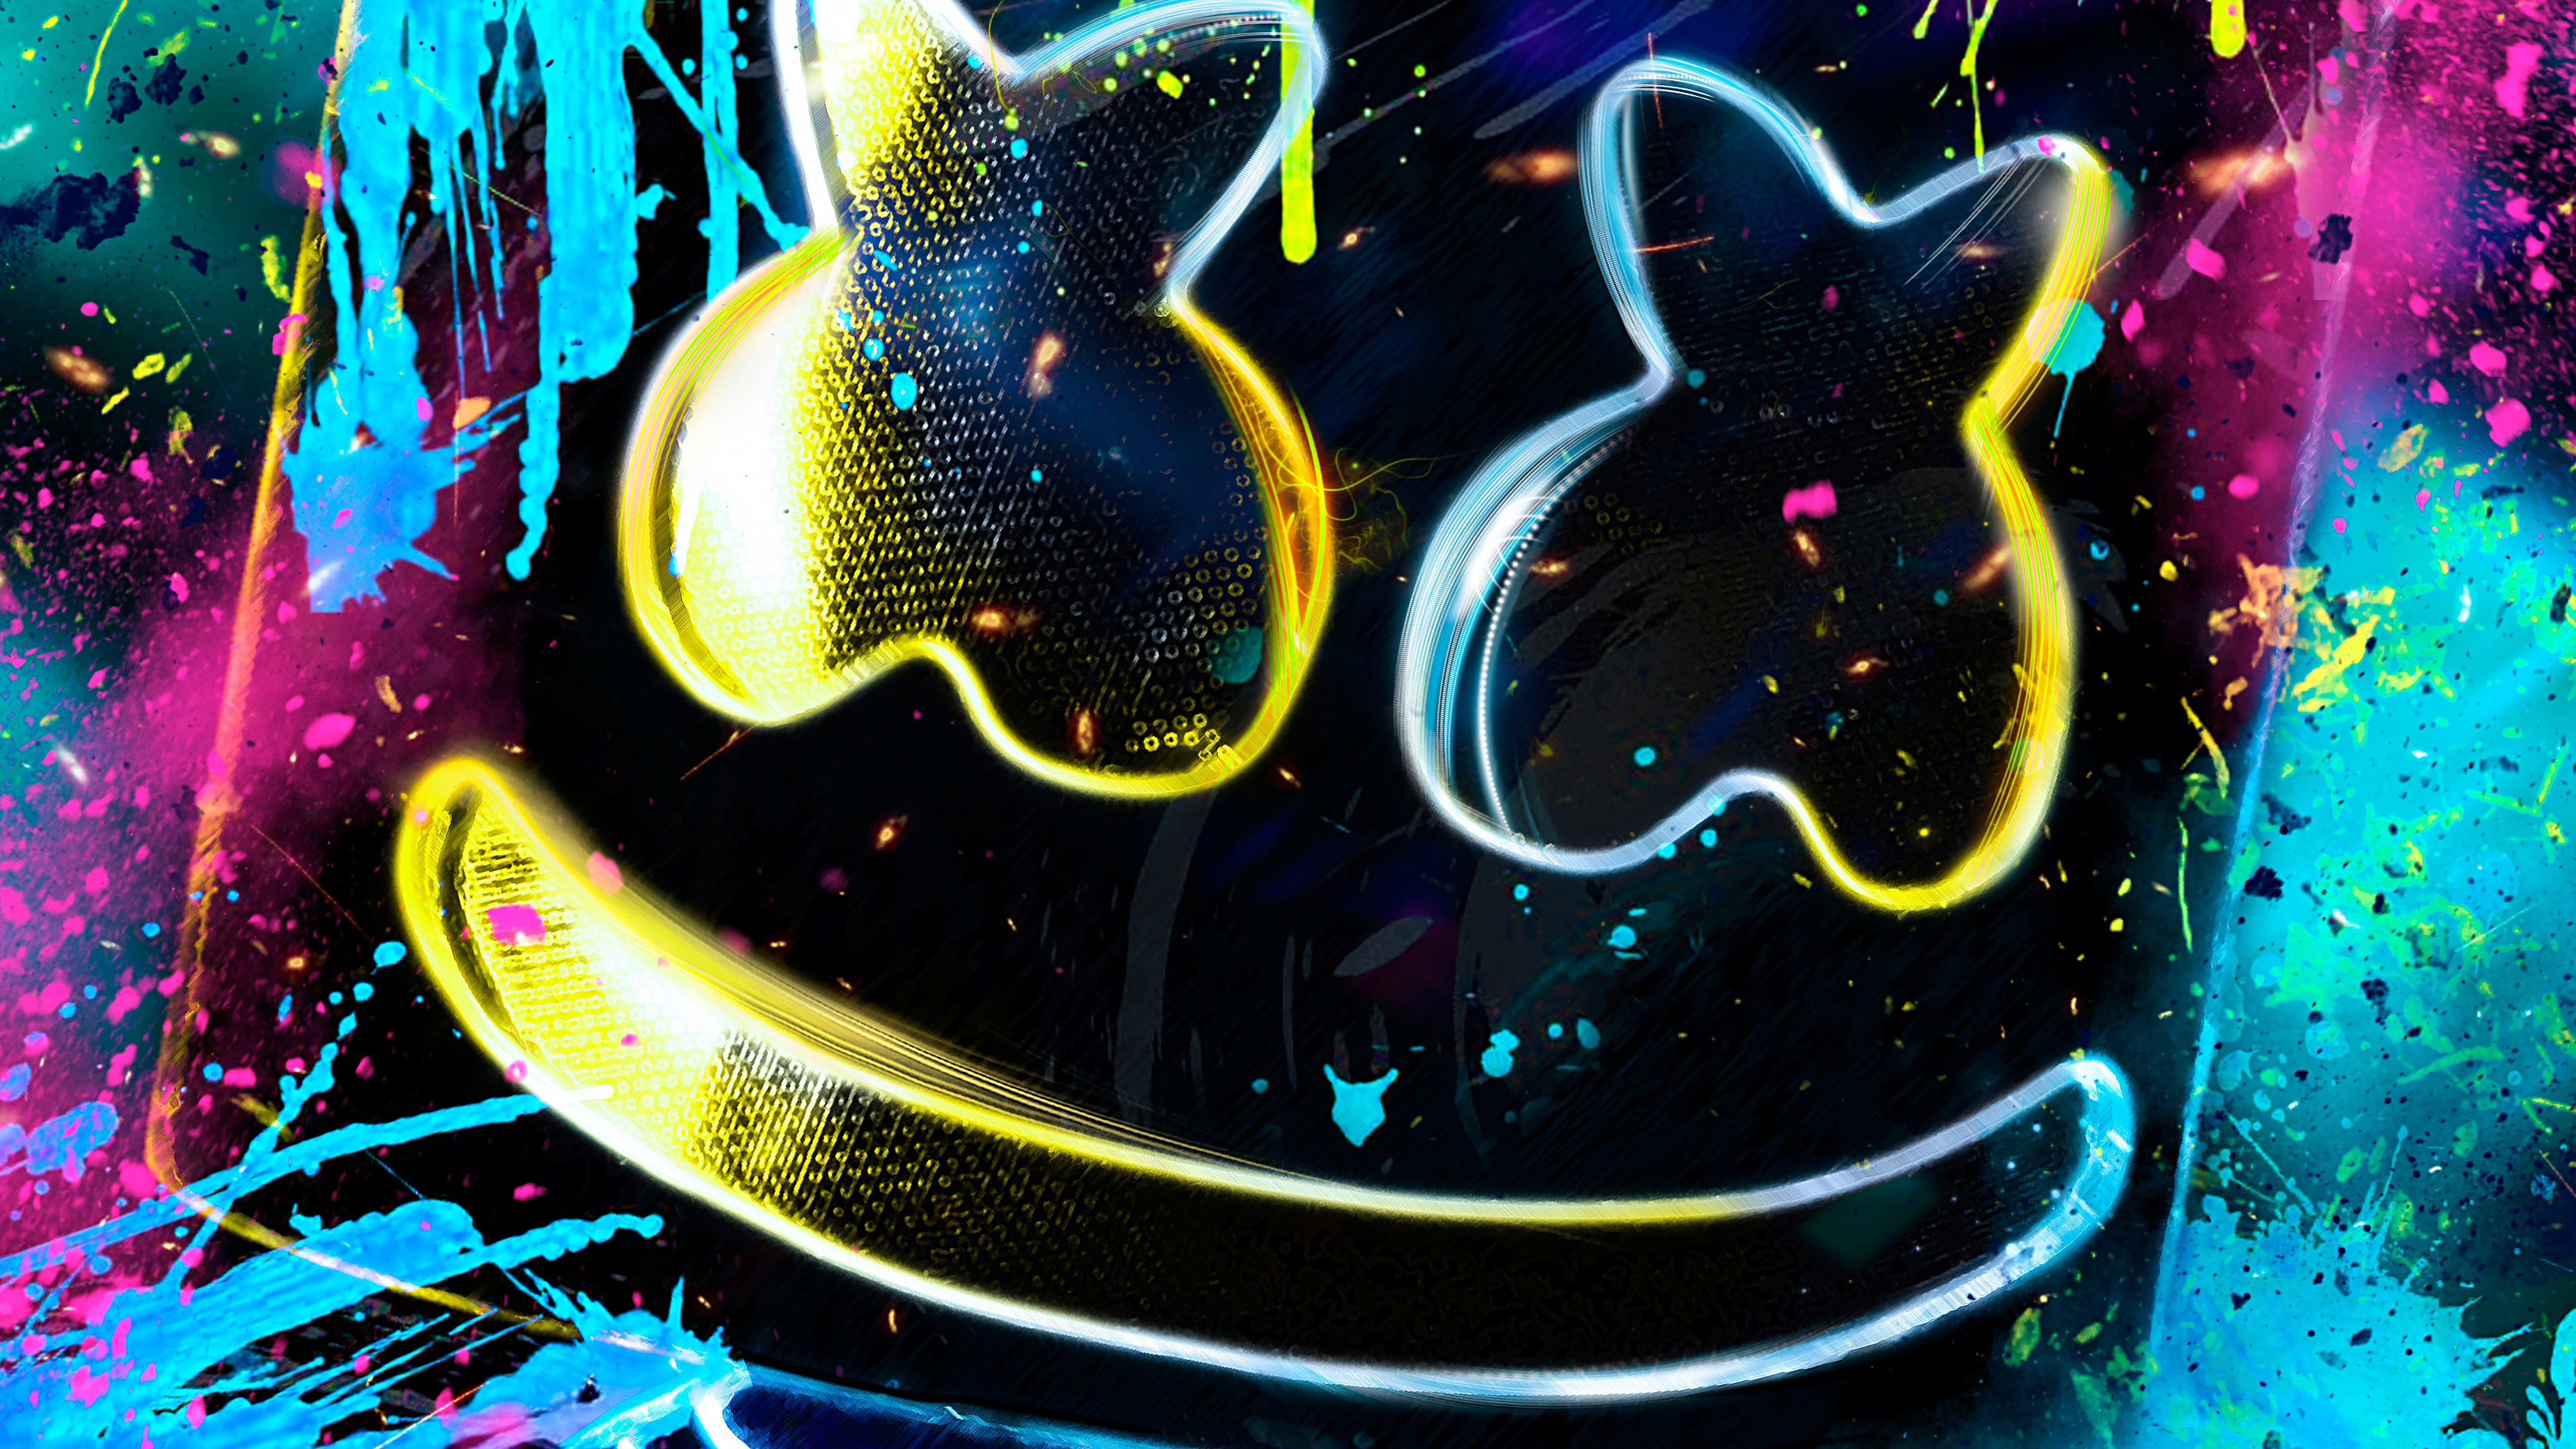 Dj Marshmello Hd Wallpaper Wall Giftwatches Co